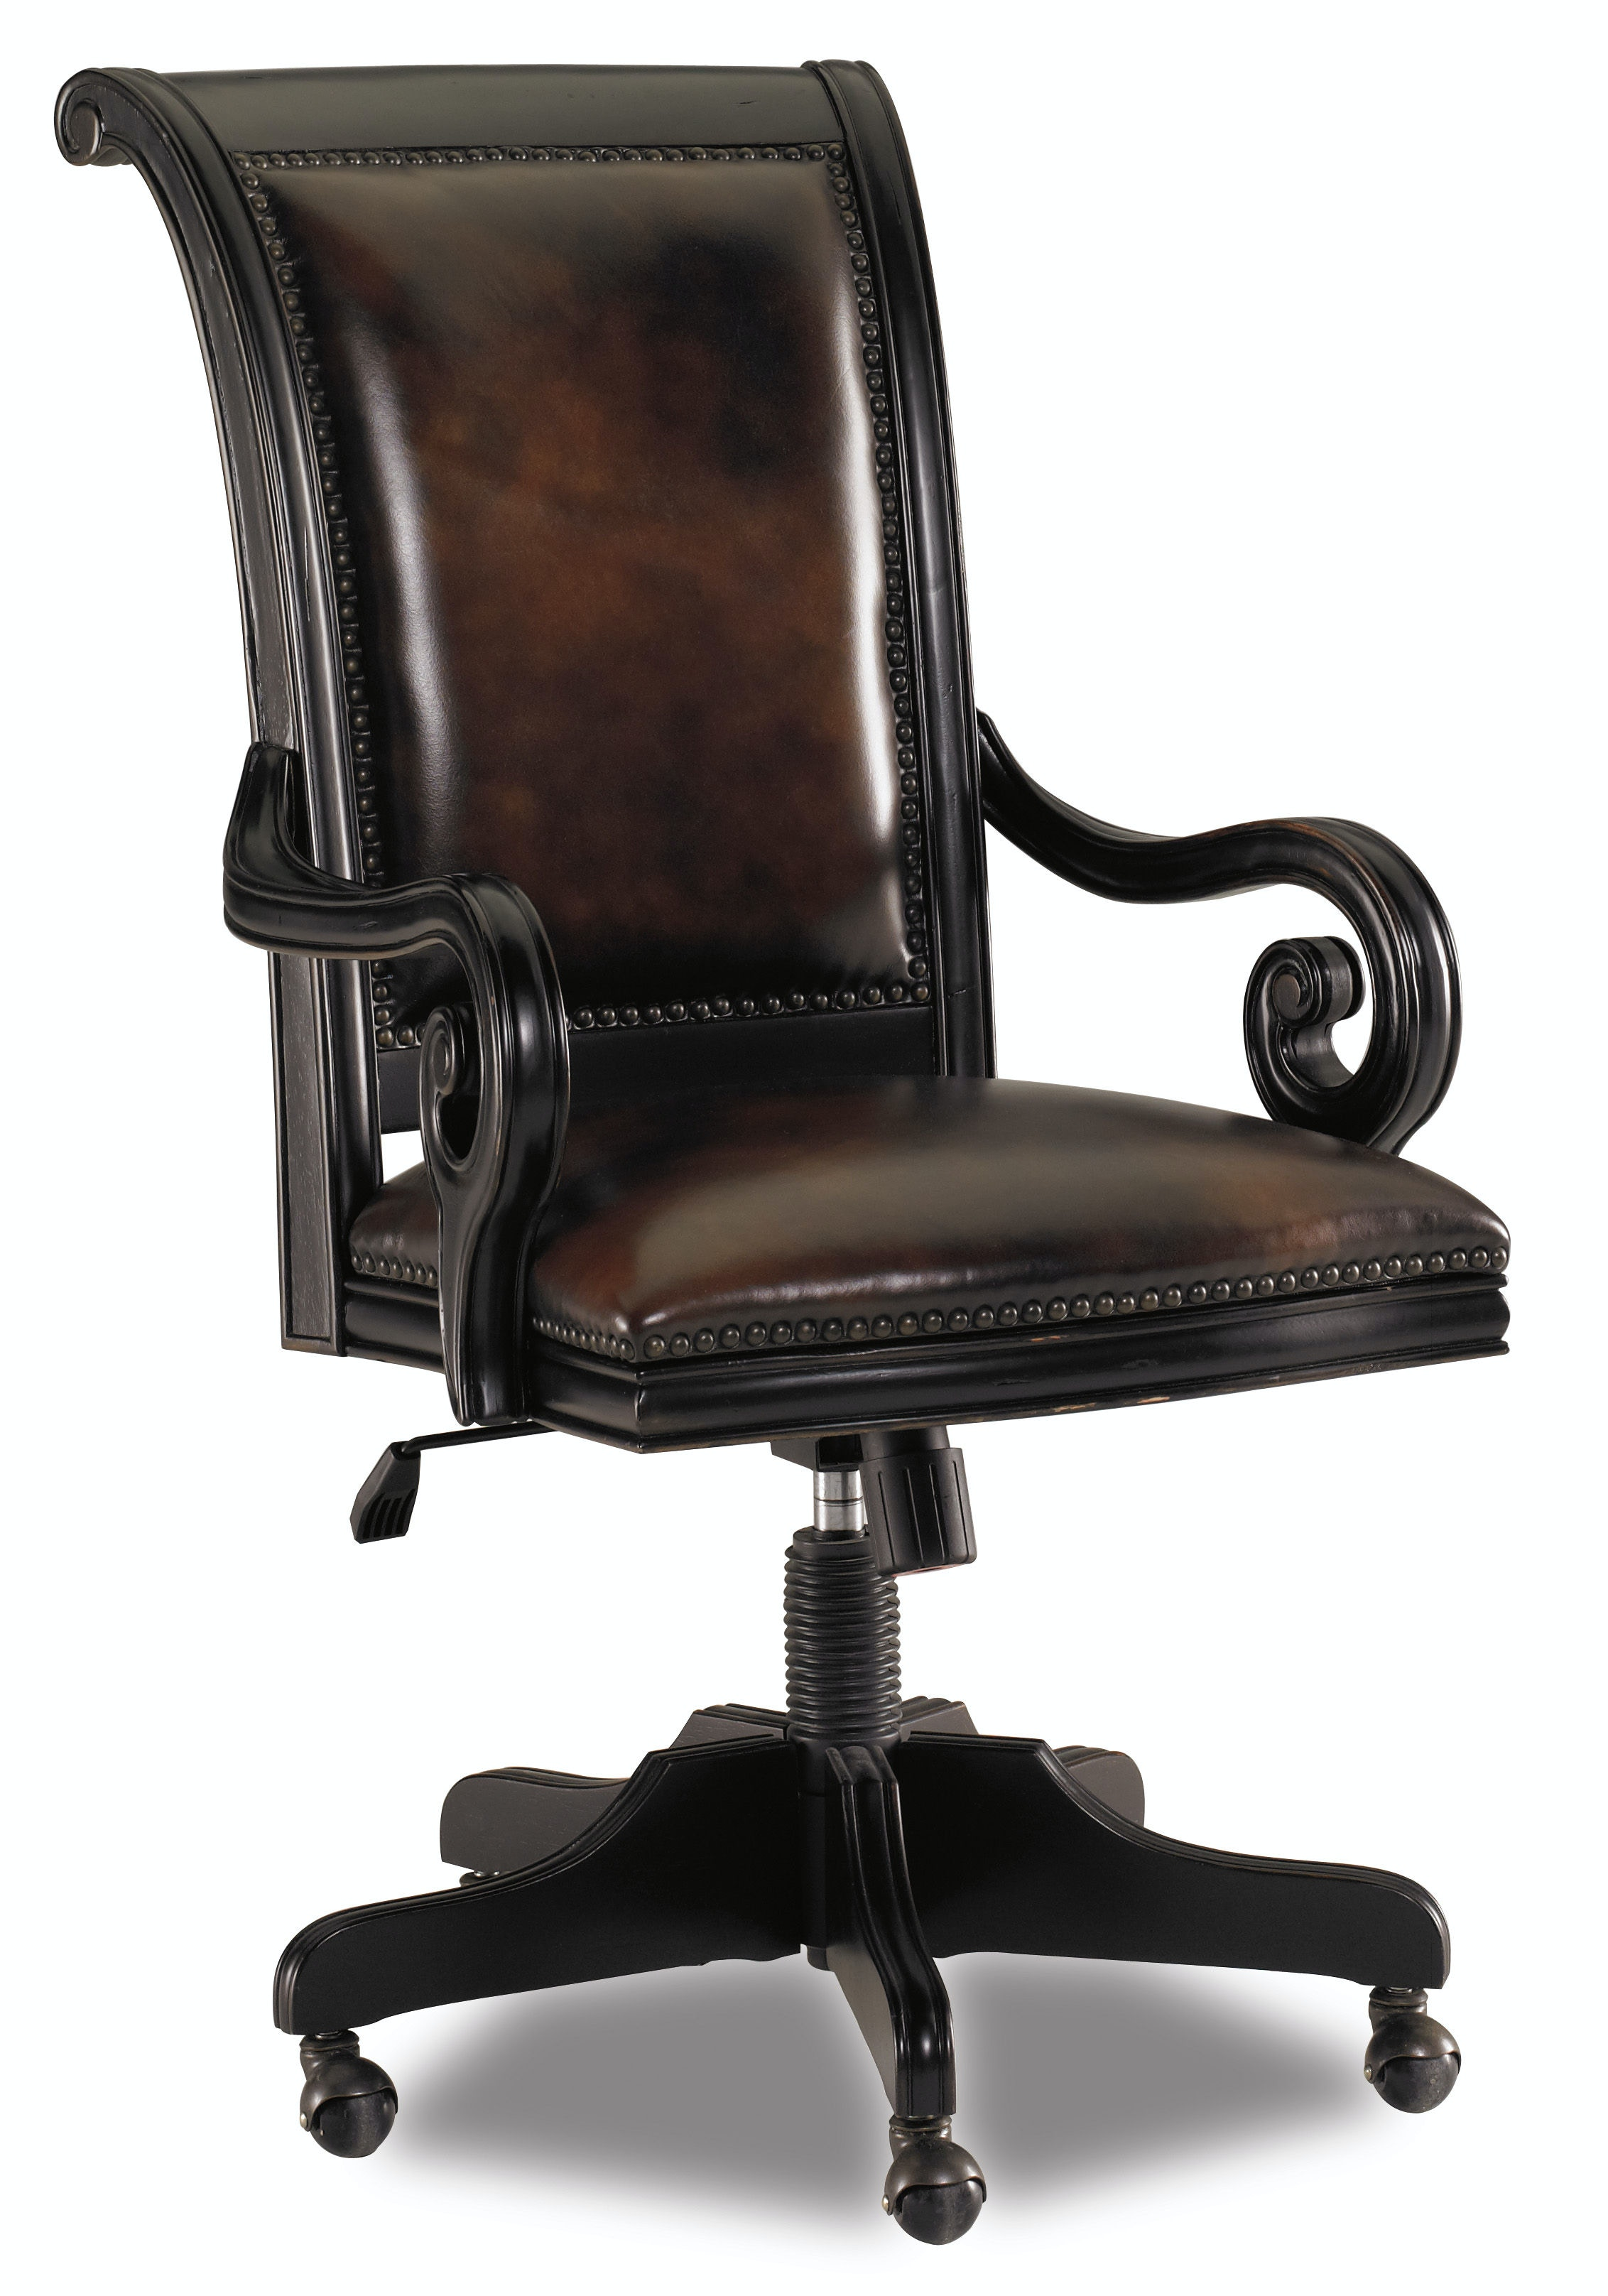 office chairs tucson. hooker furniture telluride tilt swivel chair 370-30-220 office chairs tucson